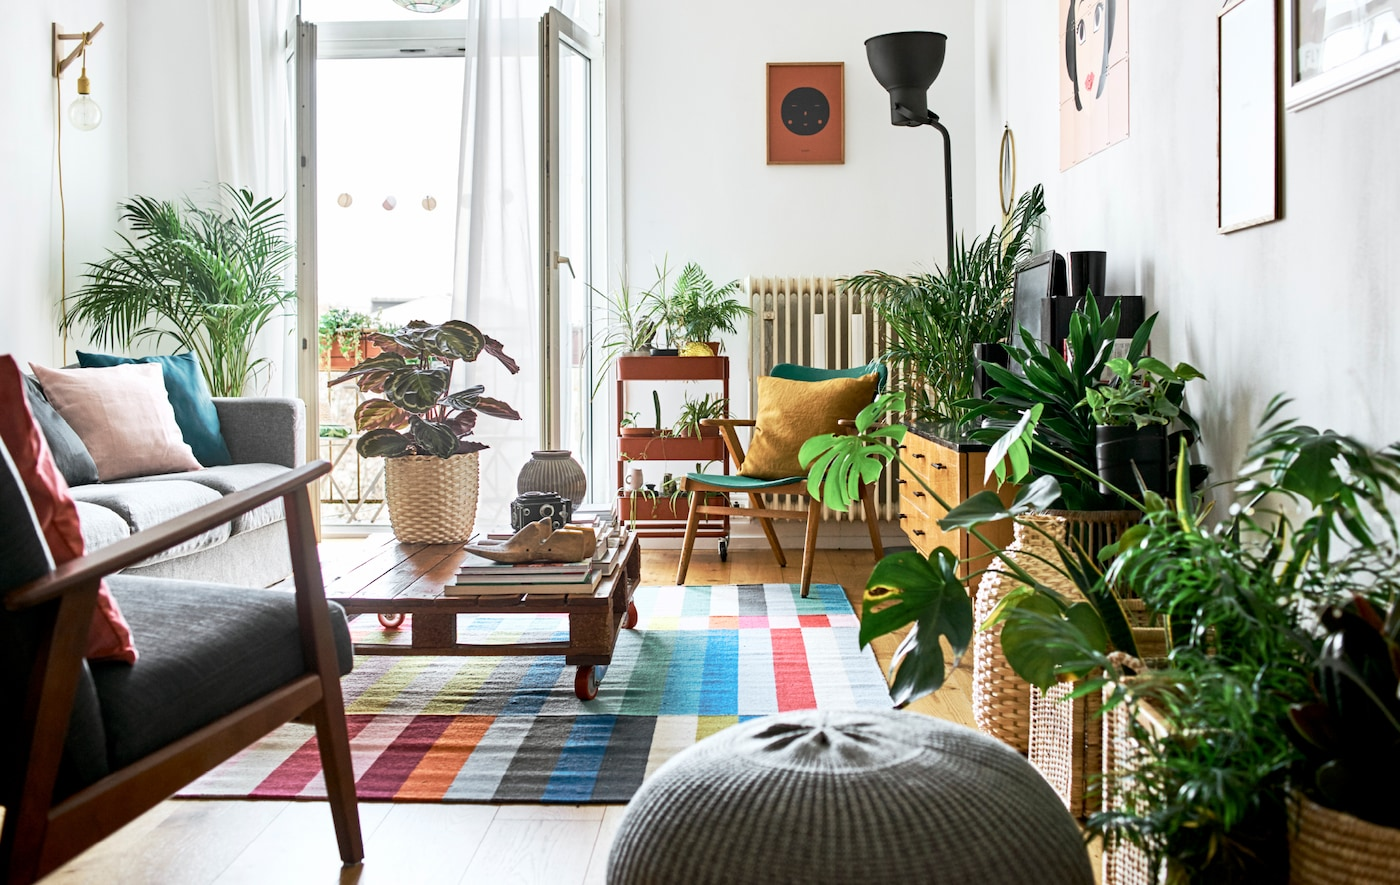 A living room with open French balcony doors, a mix of soft seating, palette coffee table a colourful rug and houseplants.